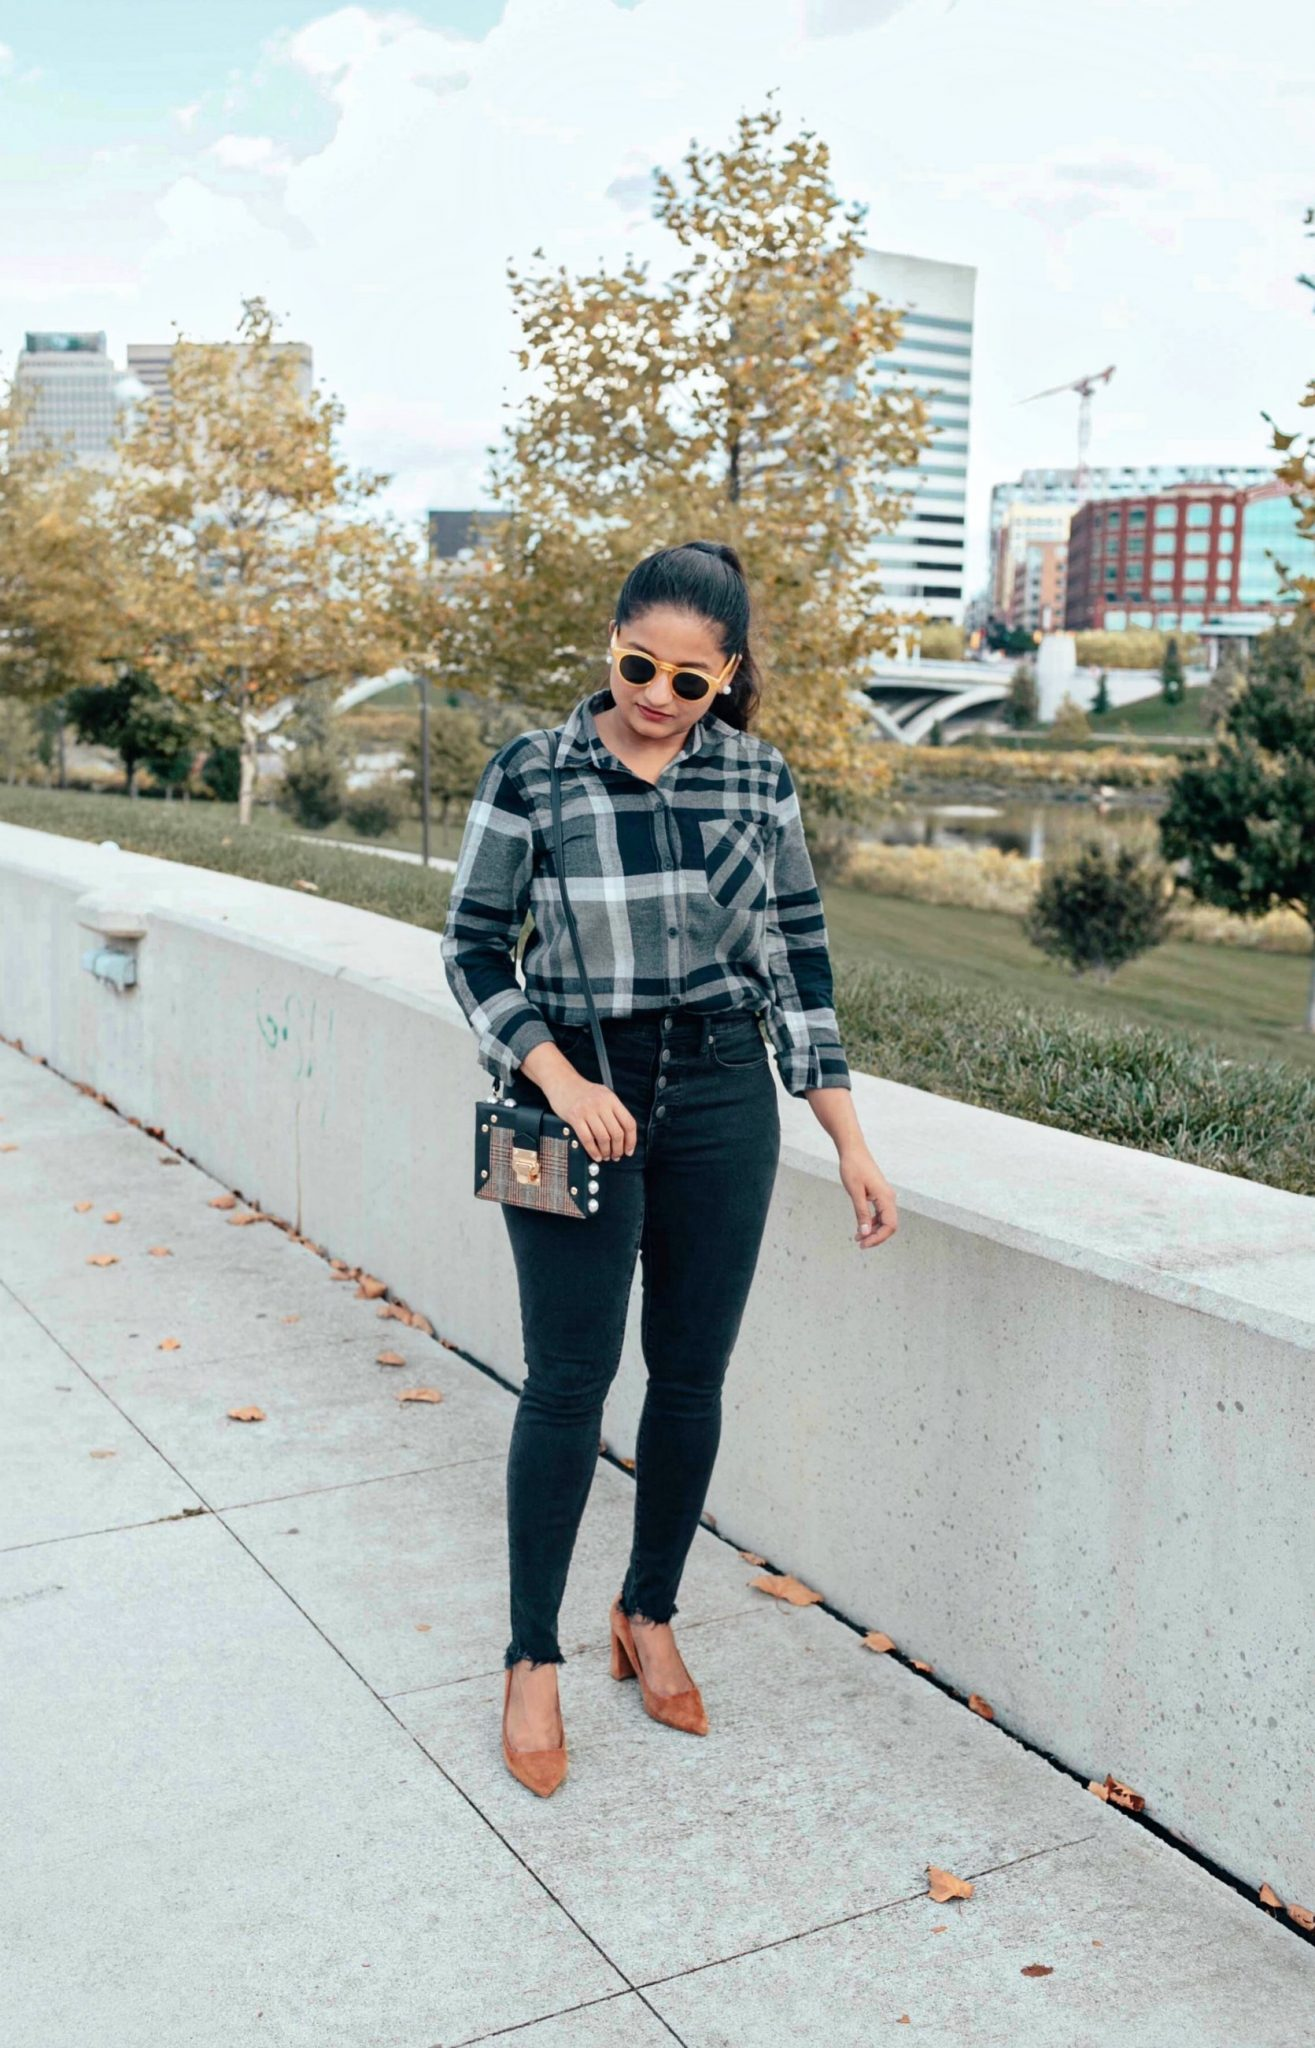 wearing madewell 9 High-Rise Skinny Jeans in Berkeley Black Button-Through Edition | Eddie Bauer boyfriend flannel shirt styled 4 ways, featured by top US modest fashion blog, Dreaming Loud